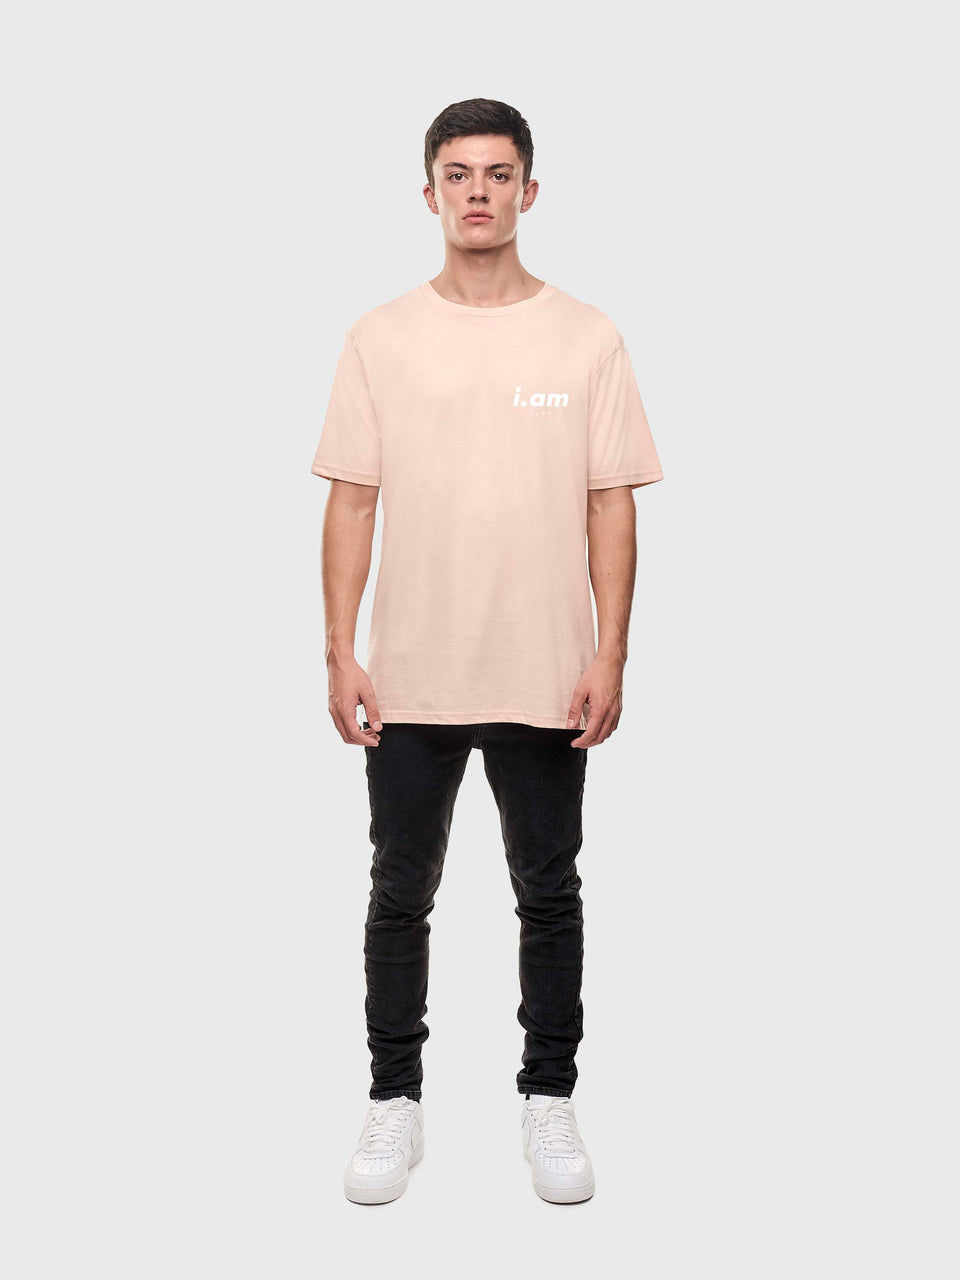 The connect - Pink - Unisex T